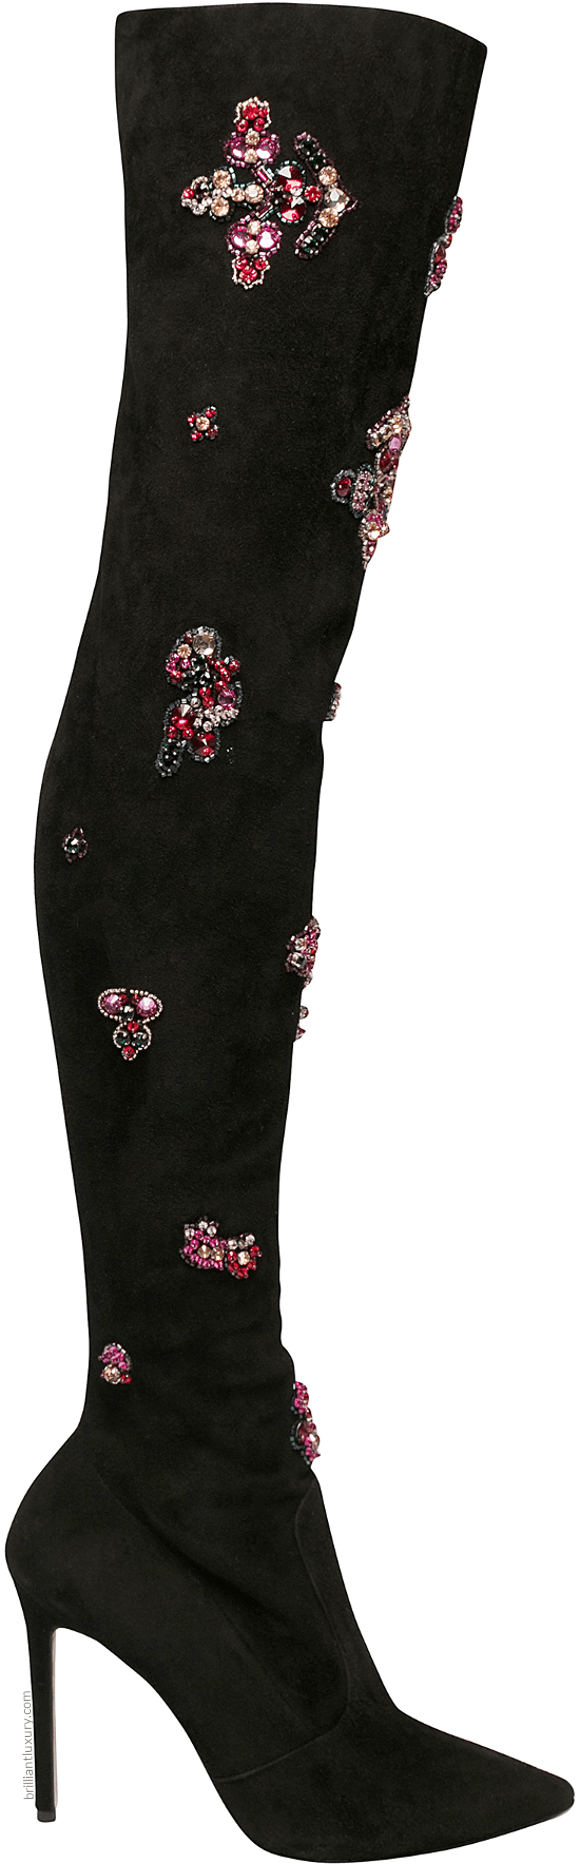 Zuhair Murad pink embroidered over the knee boots